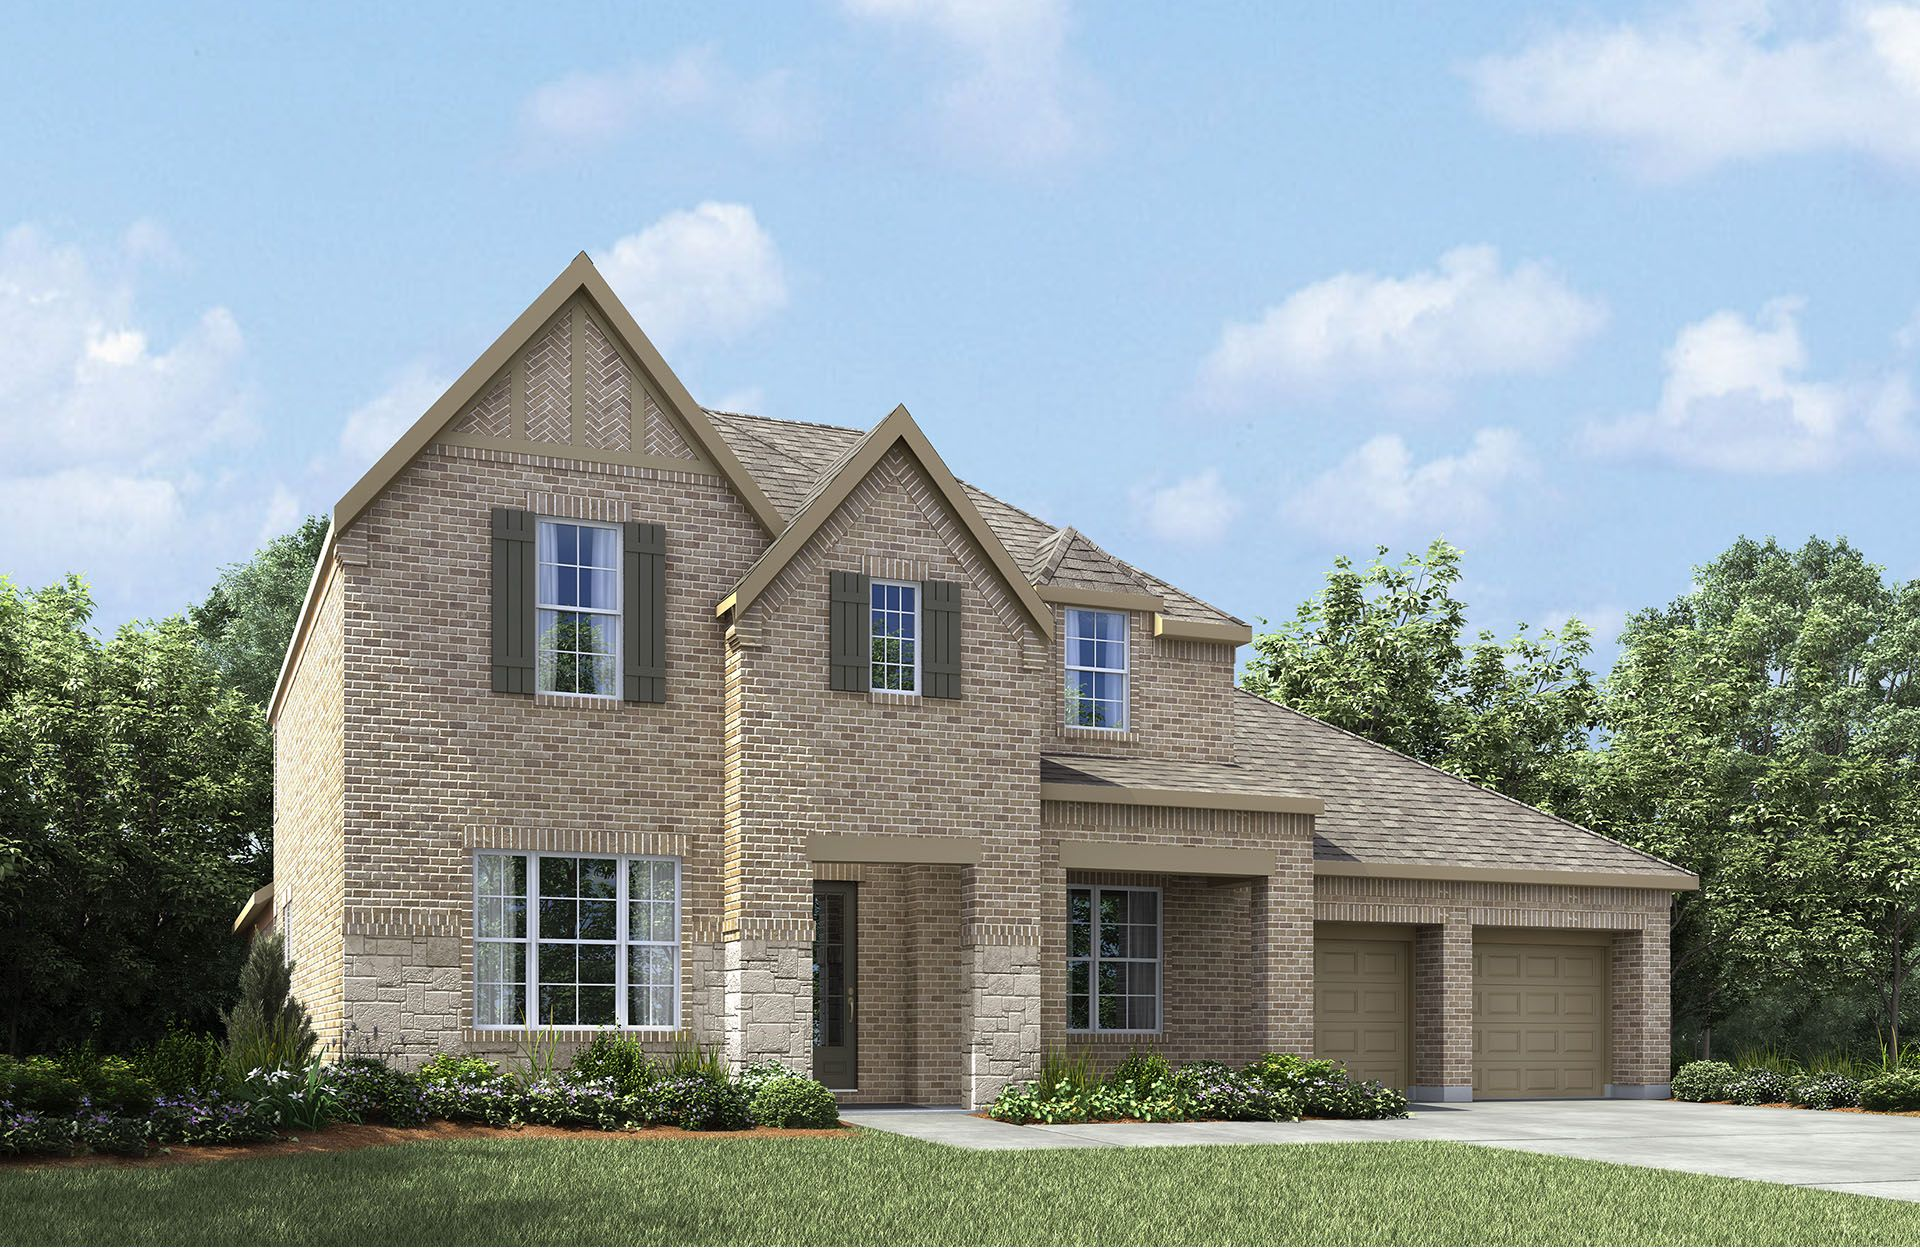 Single Family for Active at Tanner 7028 Central Court Aubrey, Texas 76227 United States